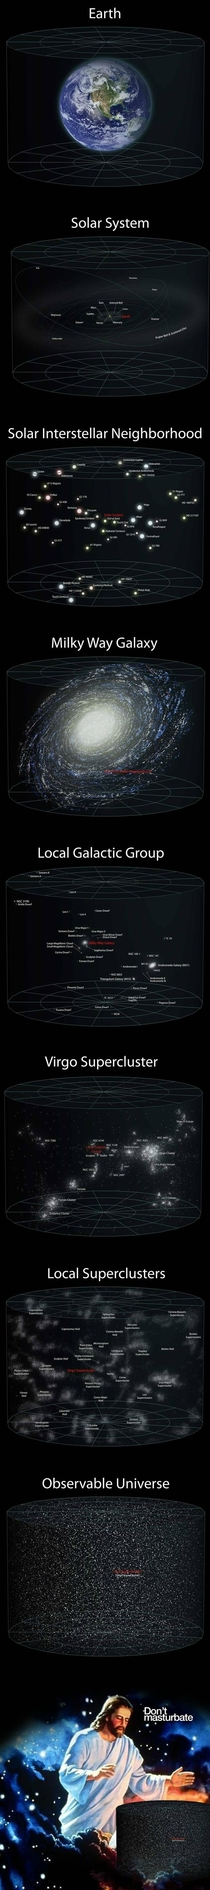 The Observable Universe